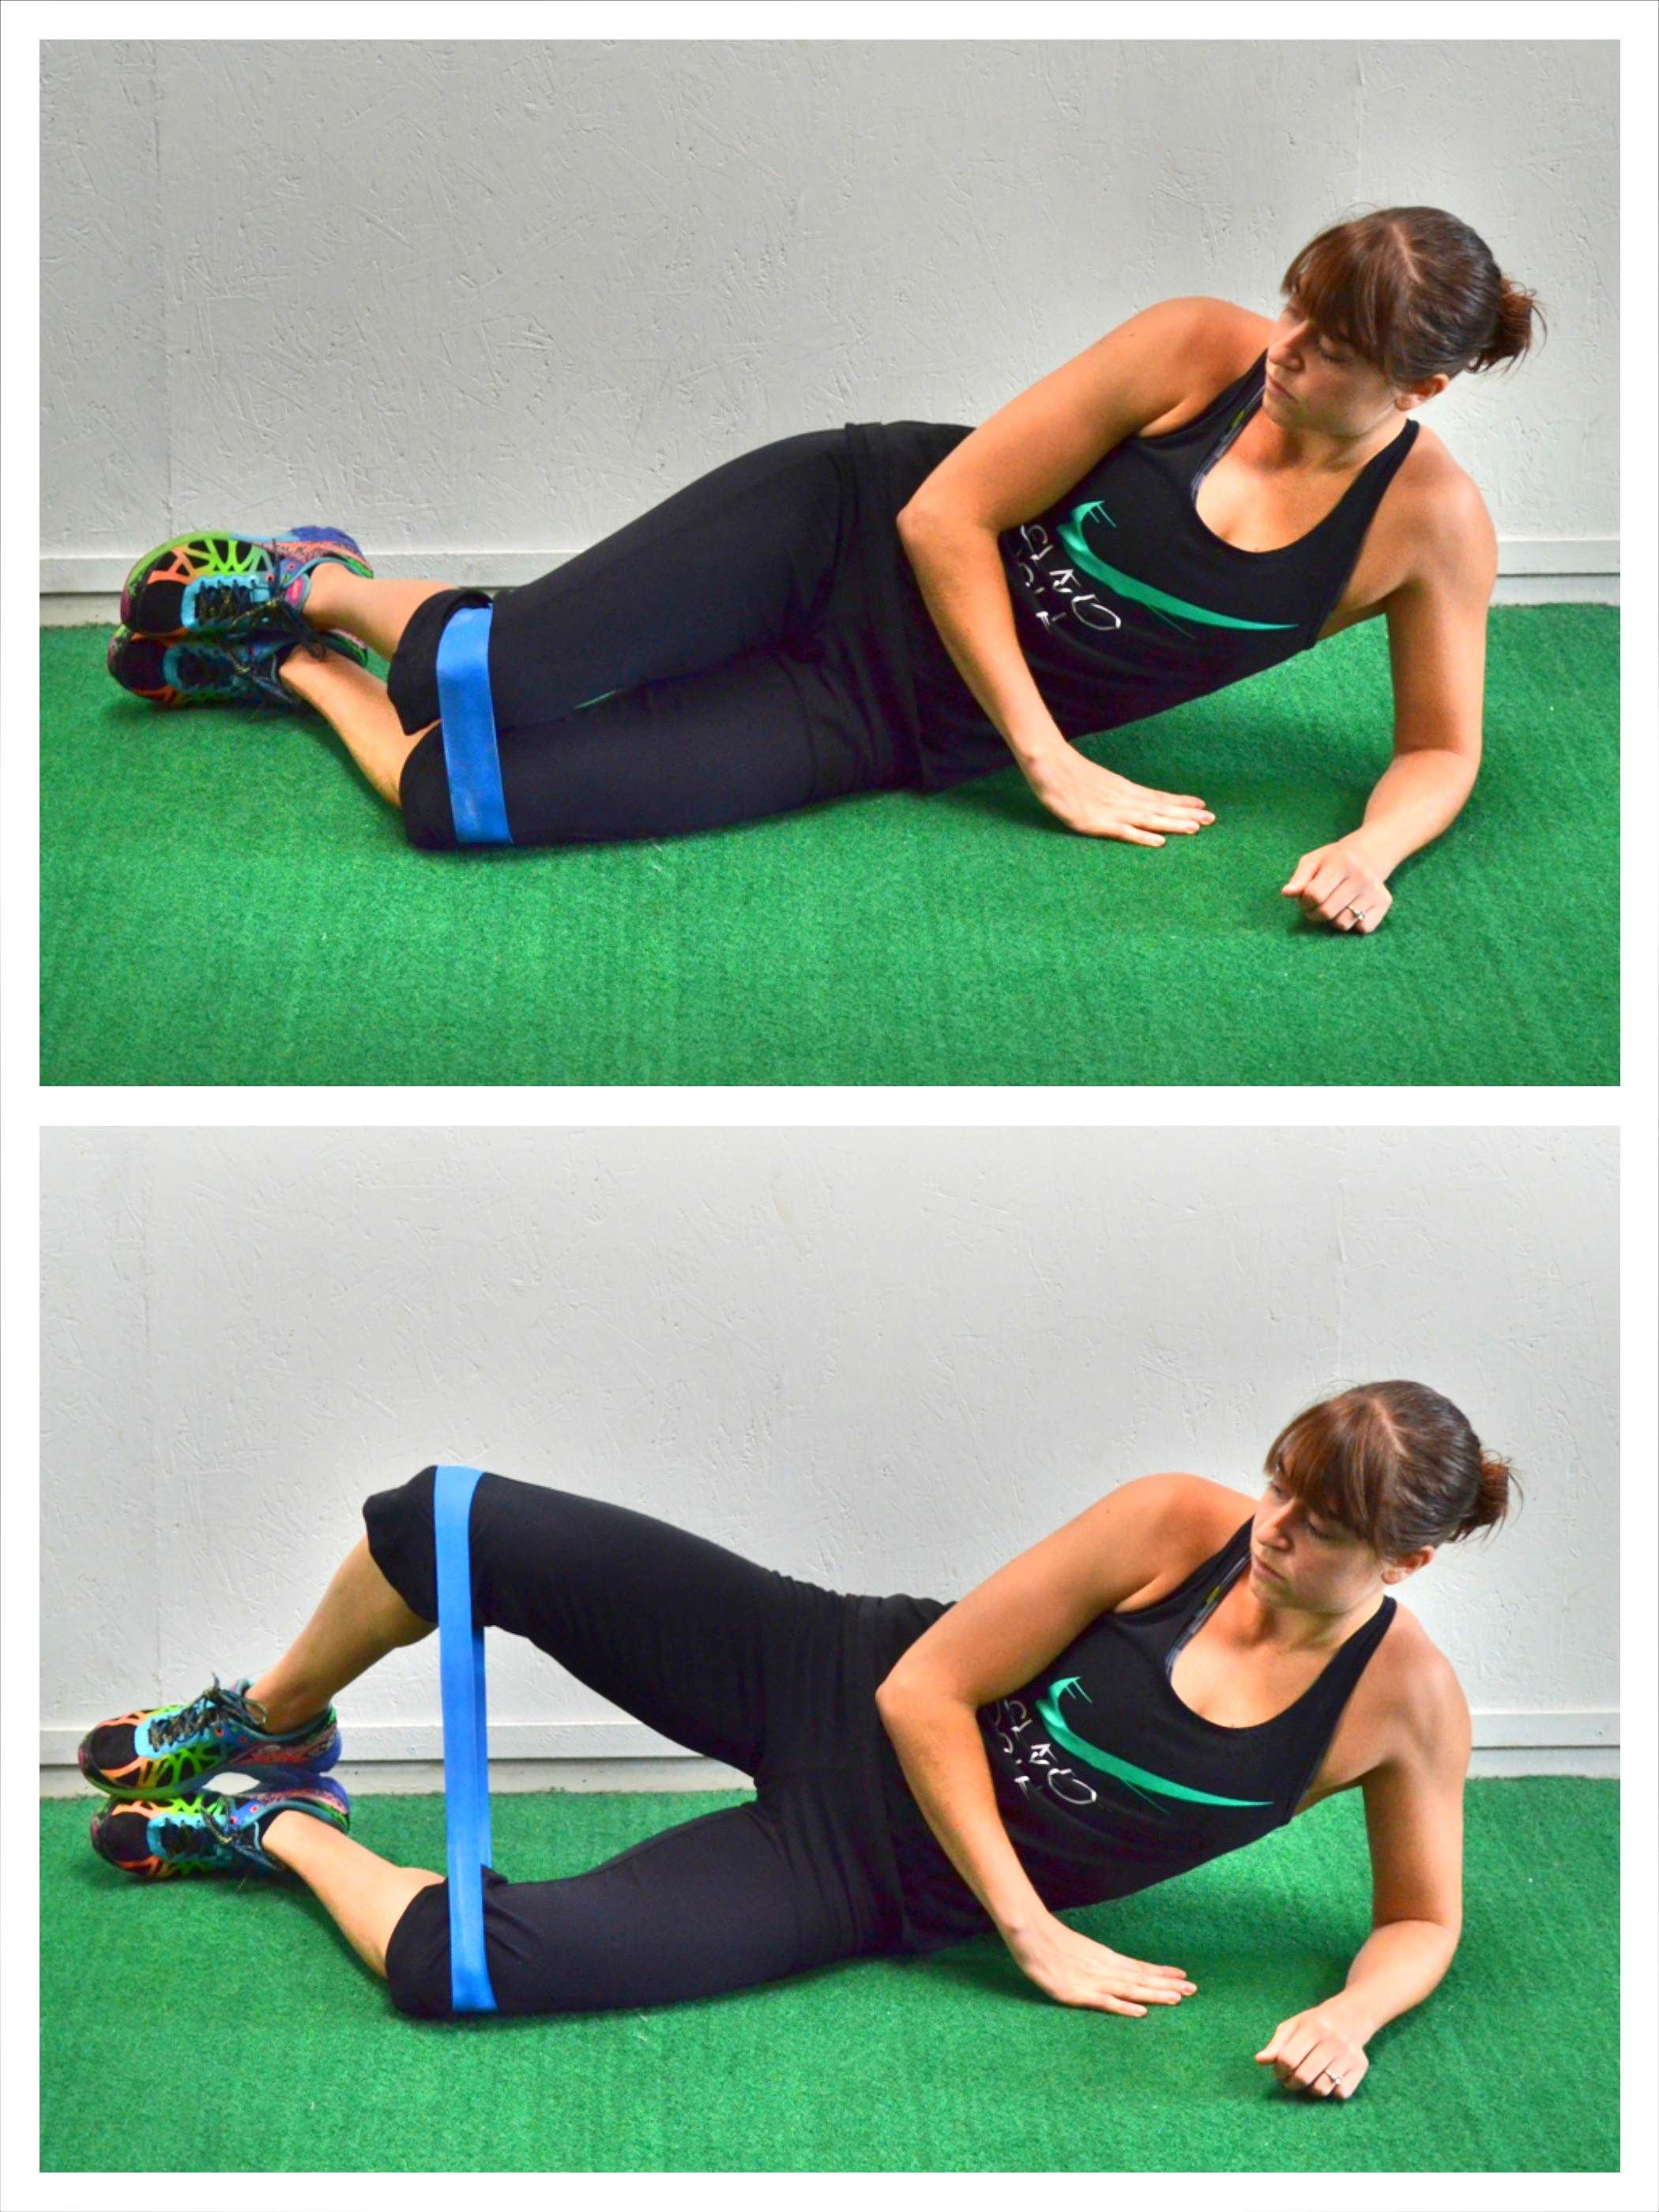 d04c312a3 Crazy hard glutes workouts using a resistance band More